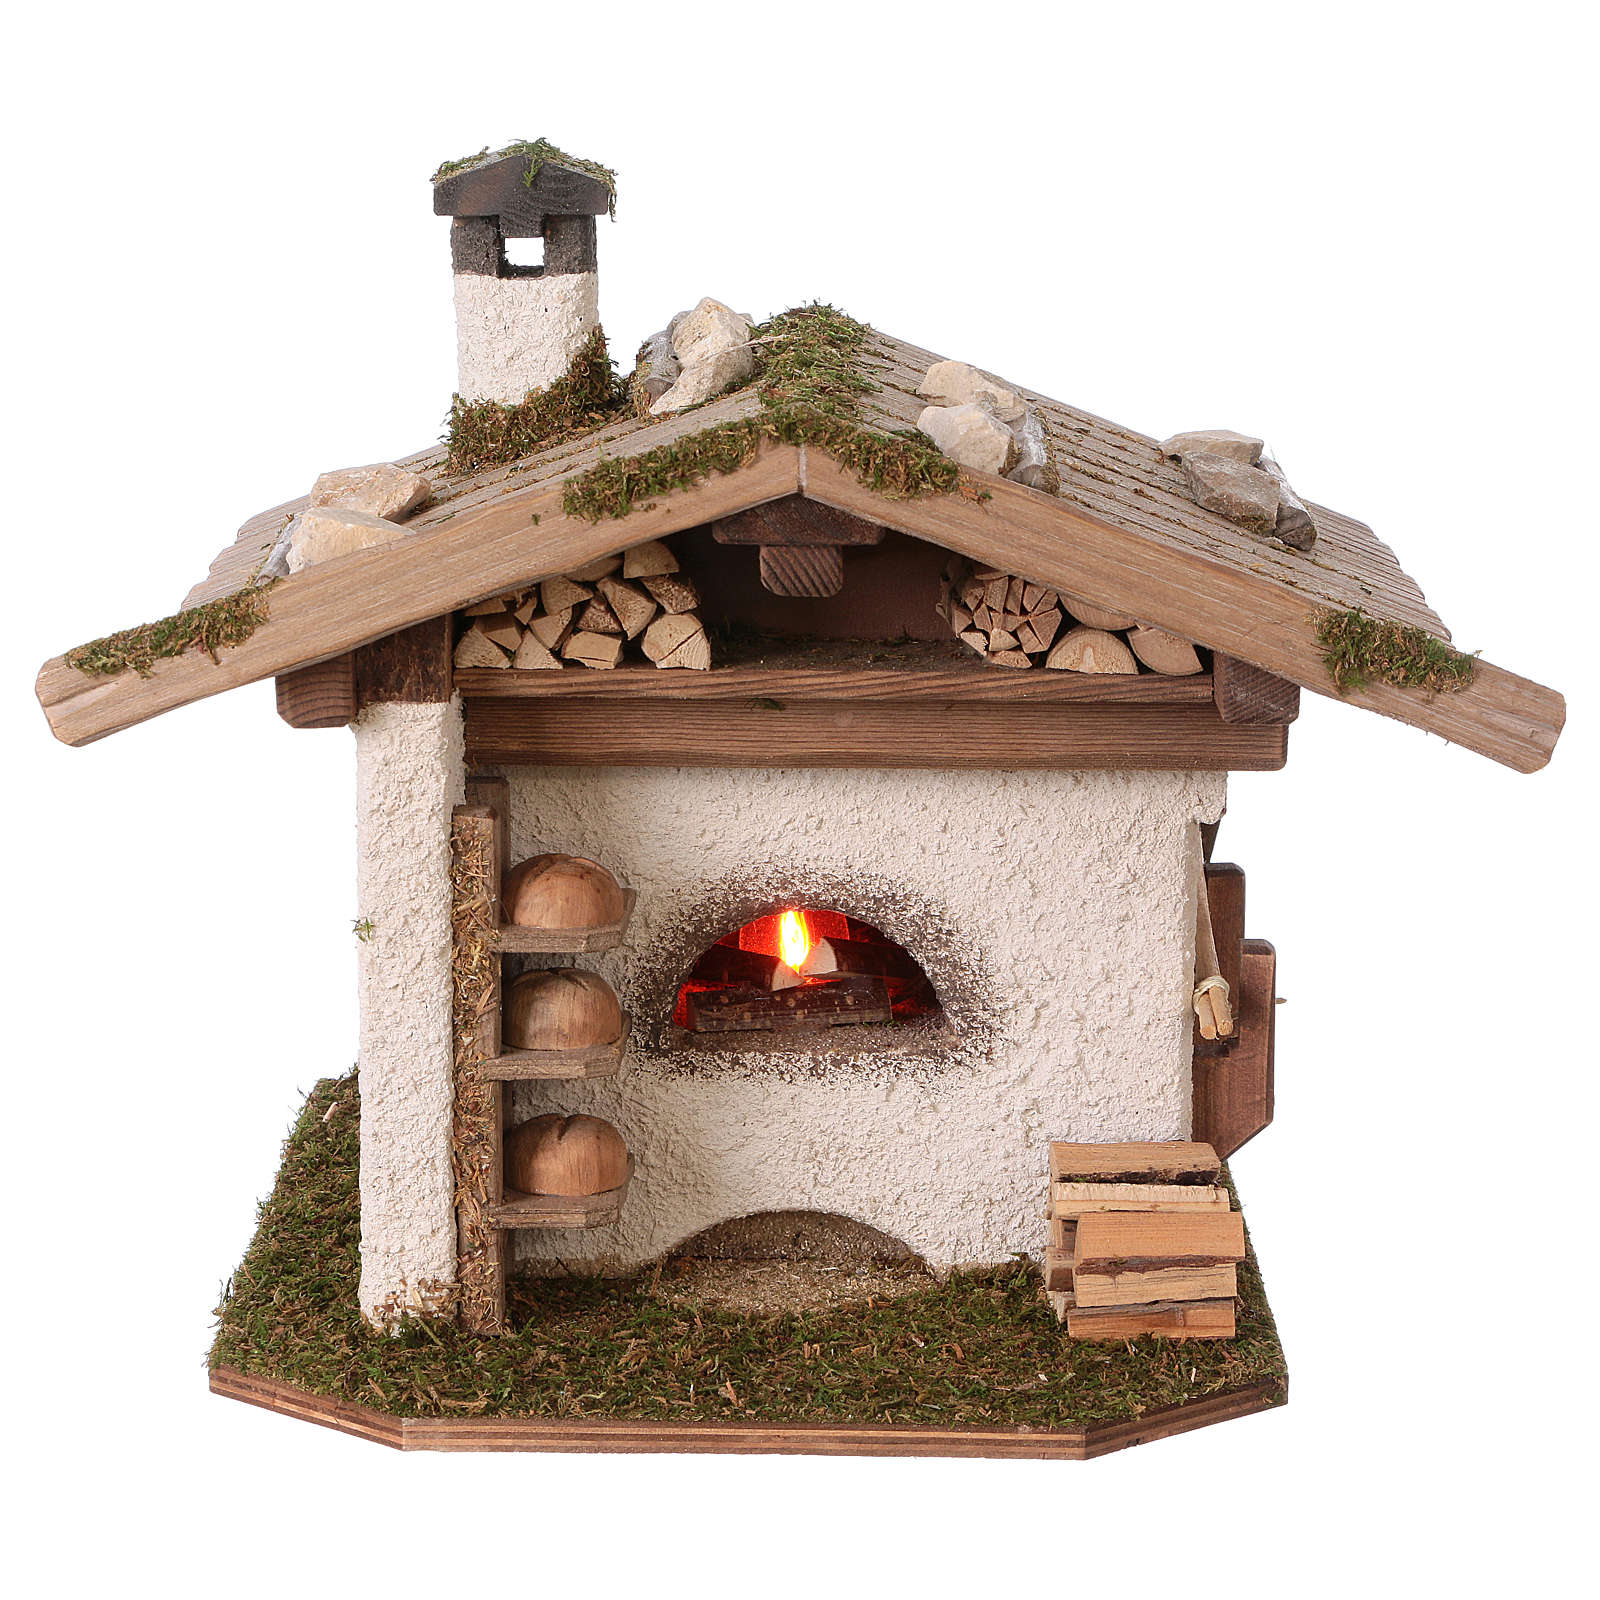 Alpine-style oven with 230V light 22x20x22 cm for 8-10cm Nativity Scene 4